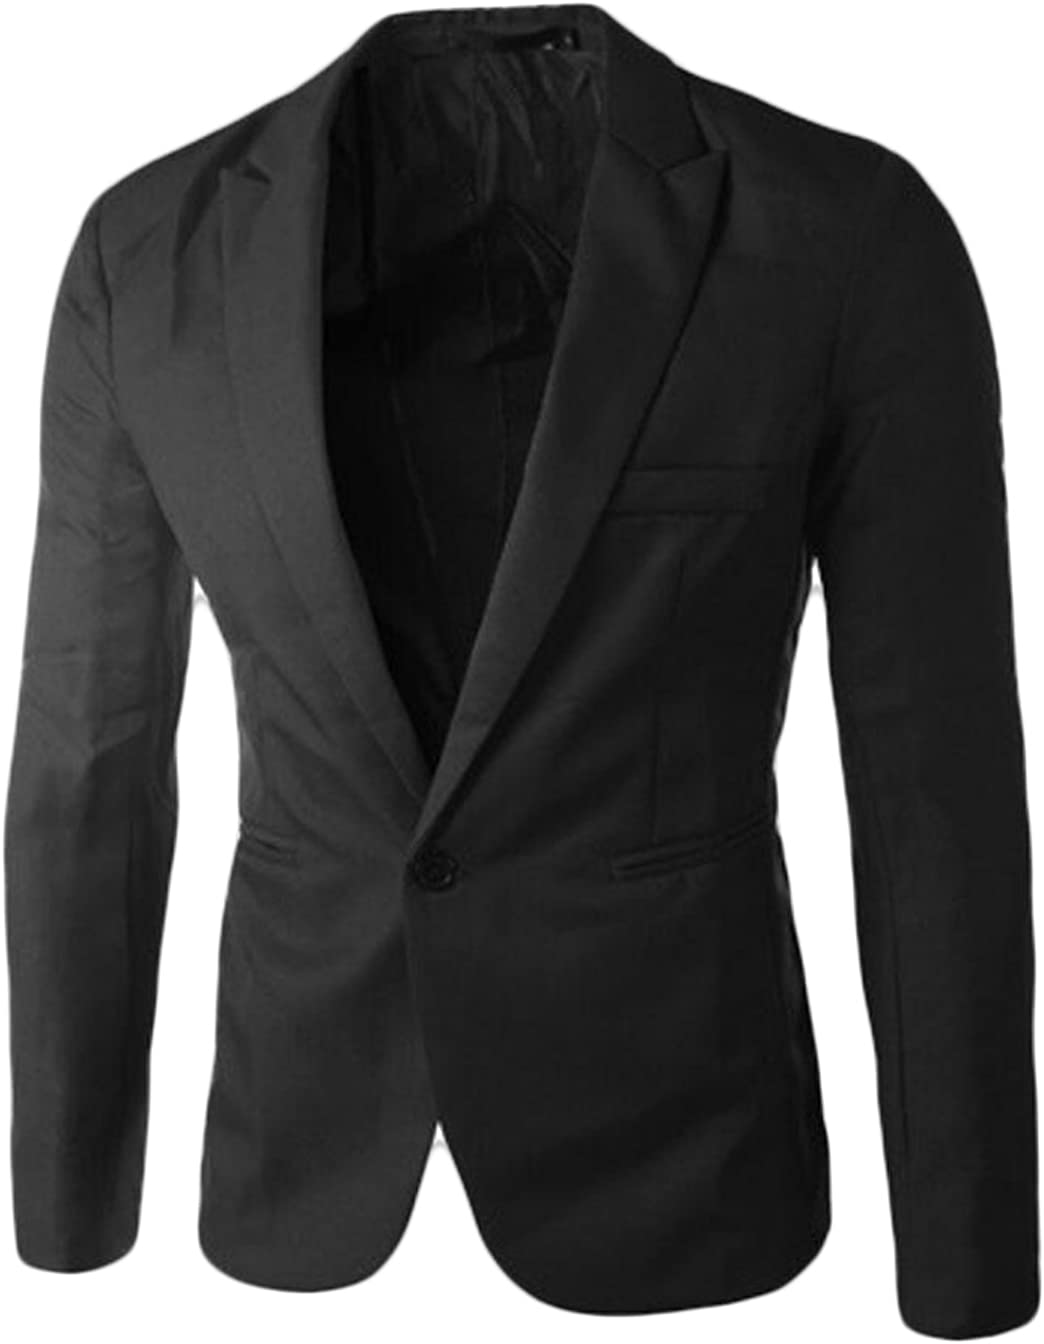 Acquaa Mens Casual Formal One Button Suit Jackets Blazer Black M